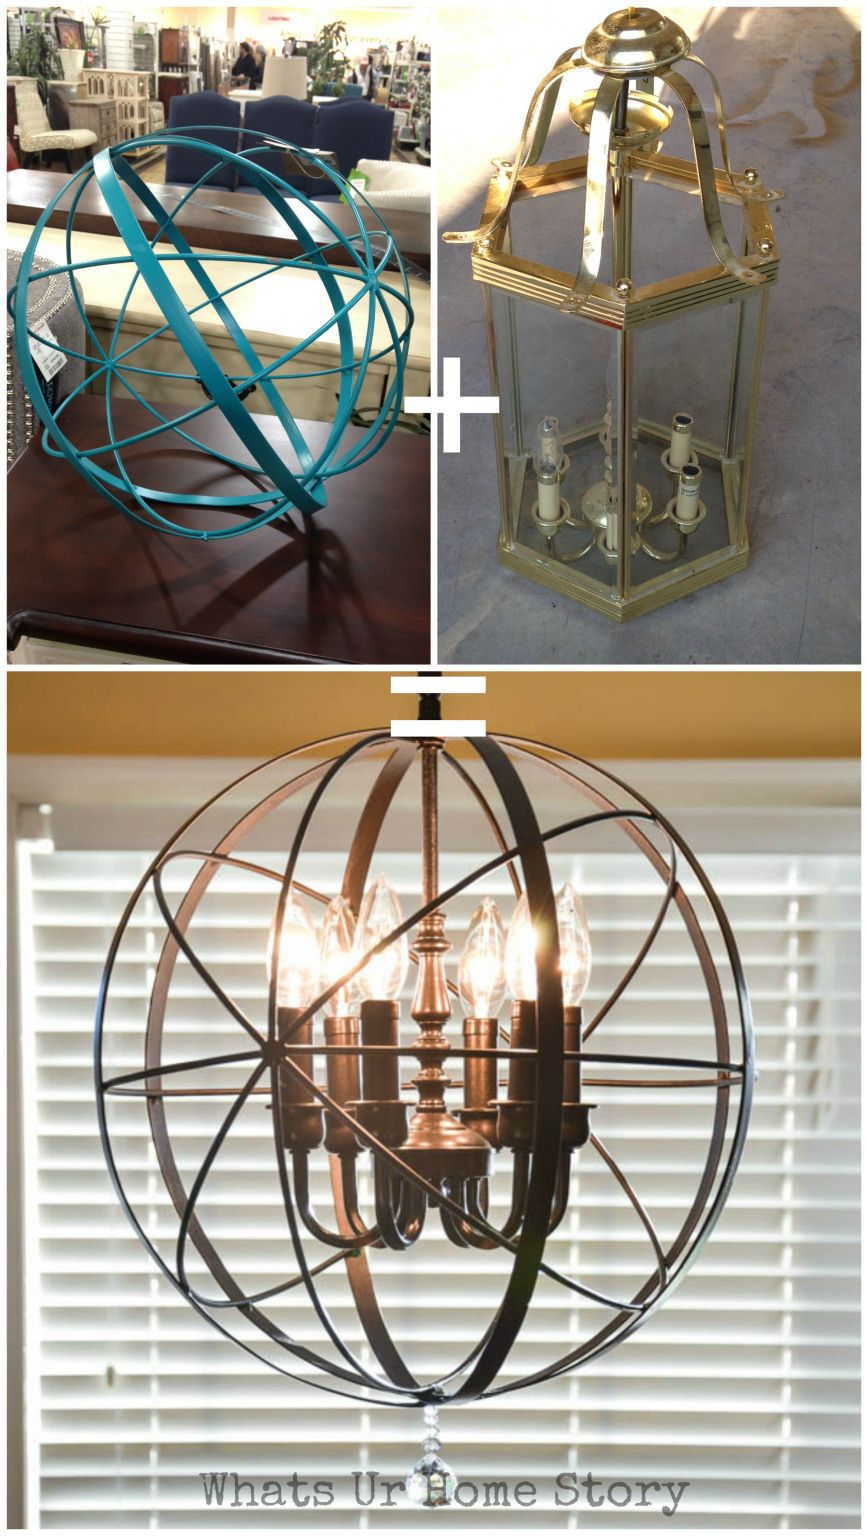 Diy Orb Chandelier Pinterest Carriage Lights And Wire Basket Light Fixture Make An From Old High End Store Knock Off For A Fraction Of The Prize